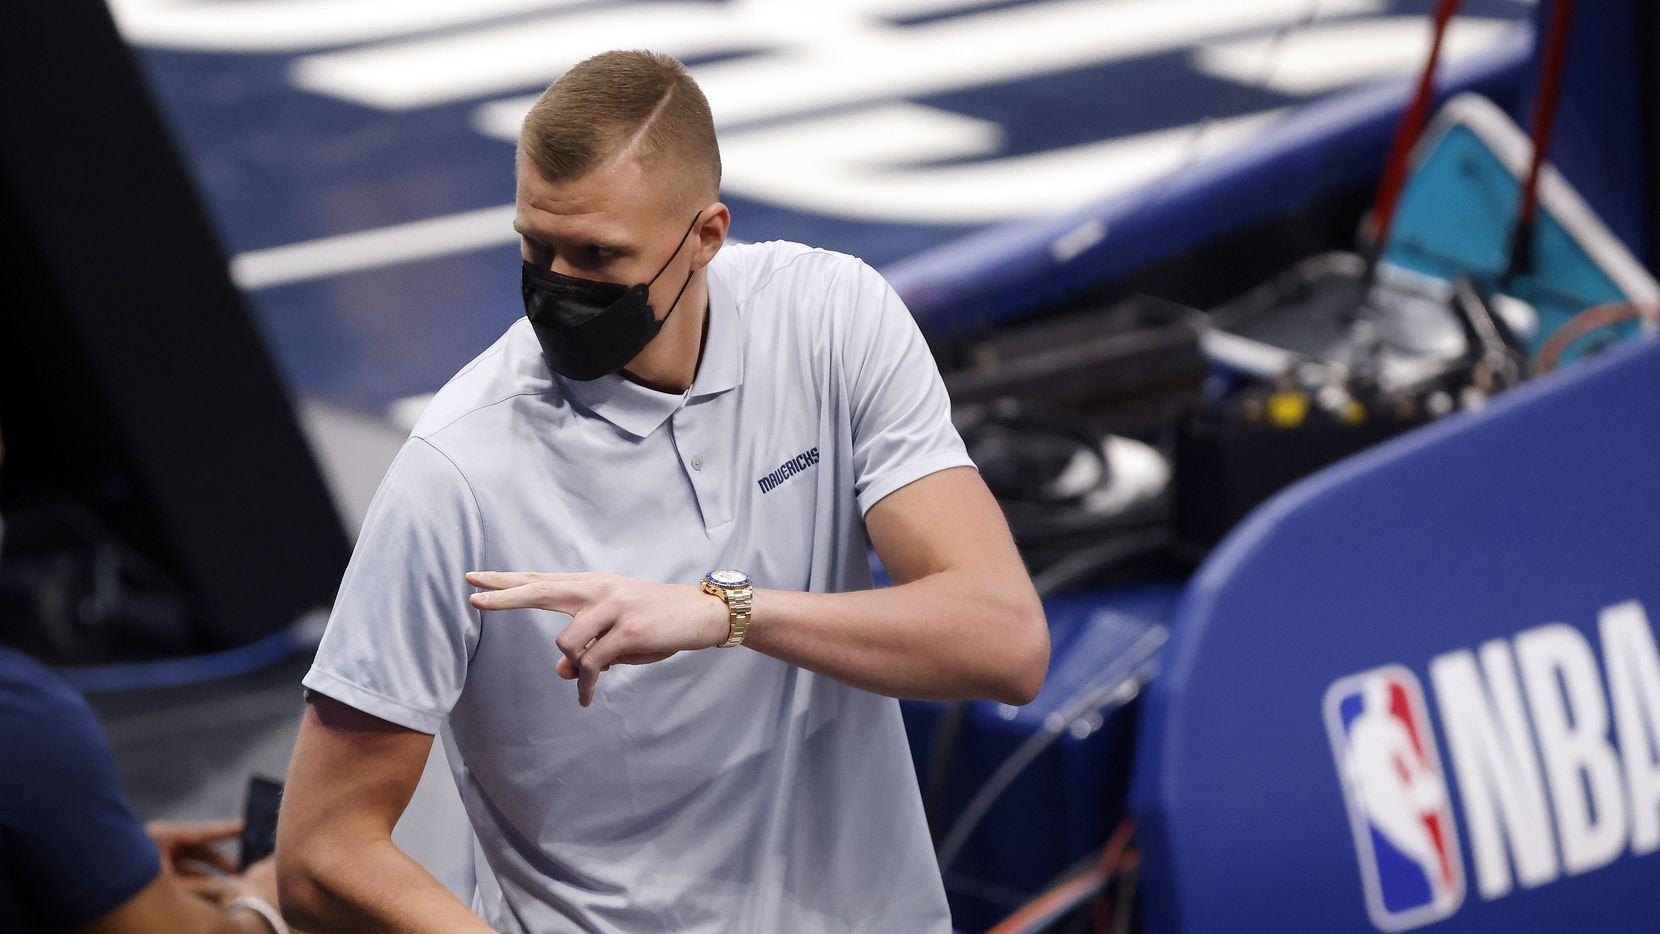 Dallas Mavericks injured center Kristaps Porzingis waves to friends as he steps into the arena during the first half against the Boston Celtics at the American Airlines Center in Dallas, Tuesday, February 23, 2021.